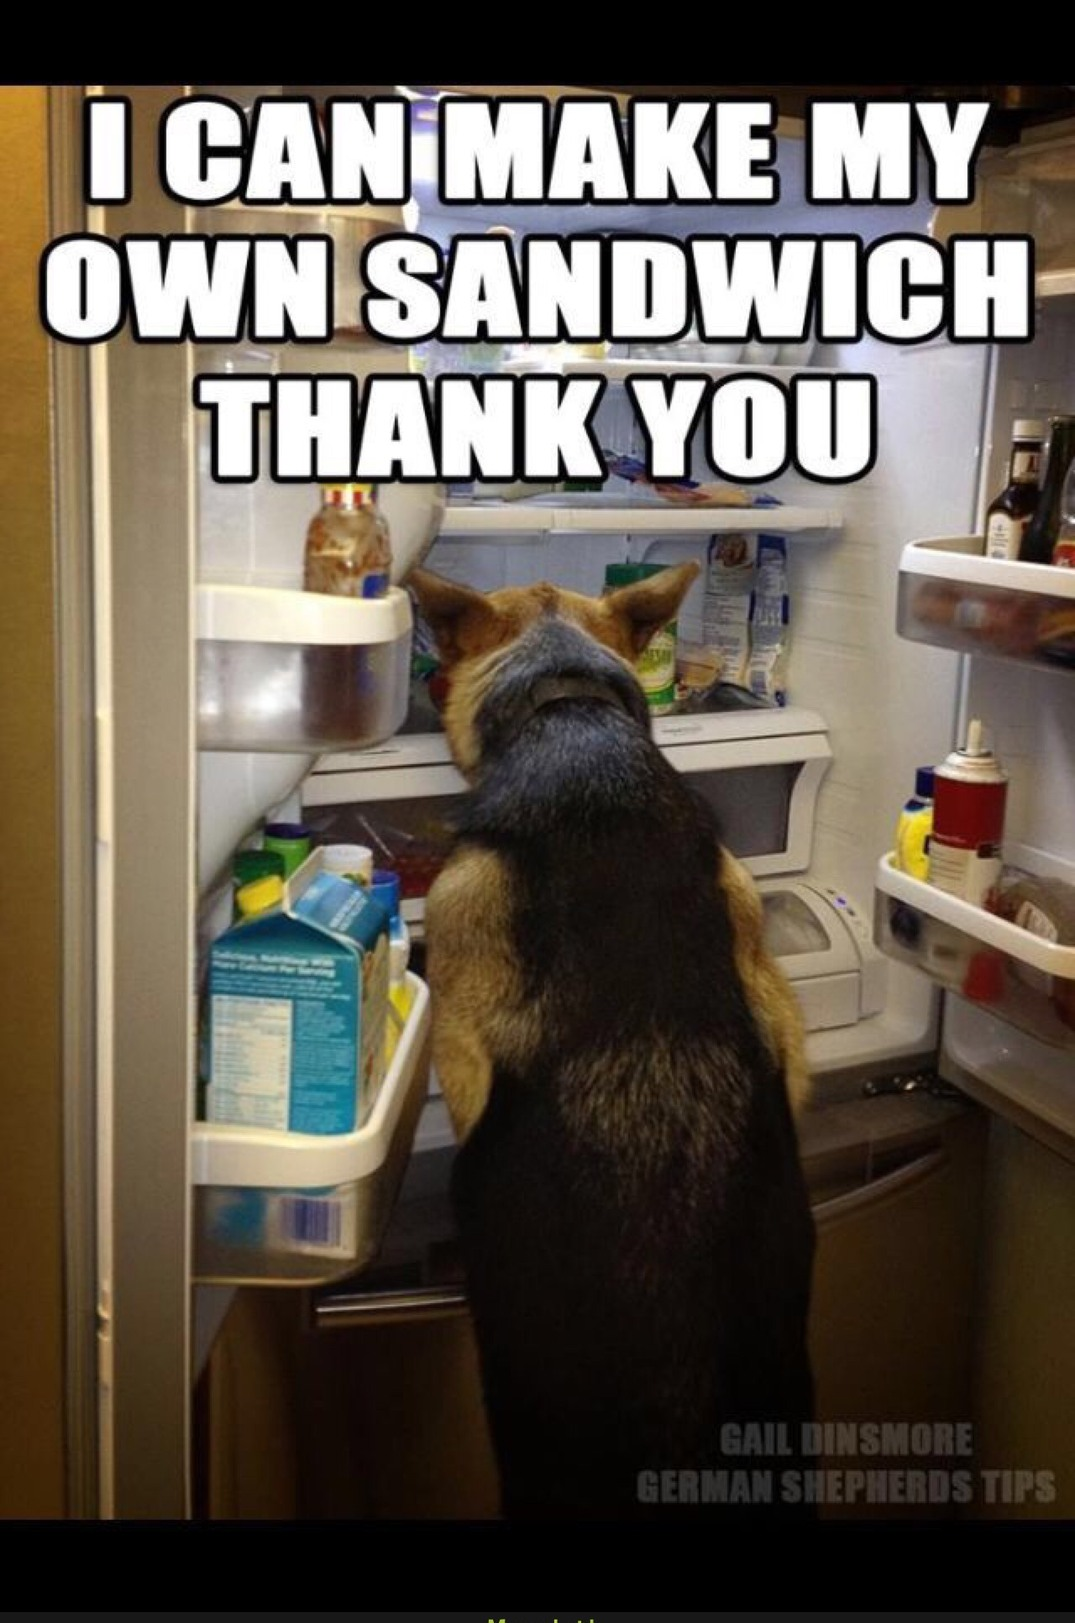 bruh I'm so baked I think a dogs in the fridge - meme